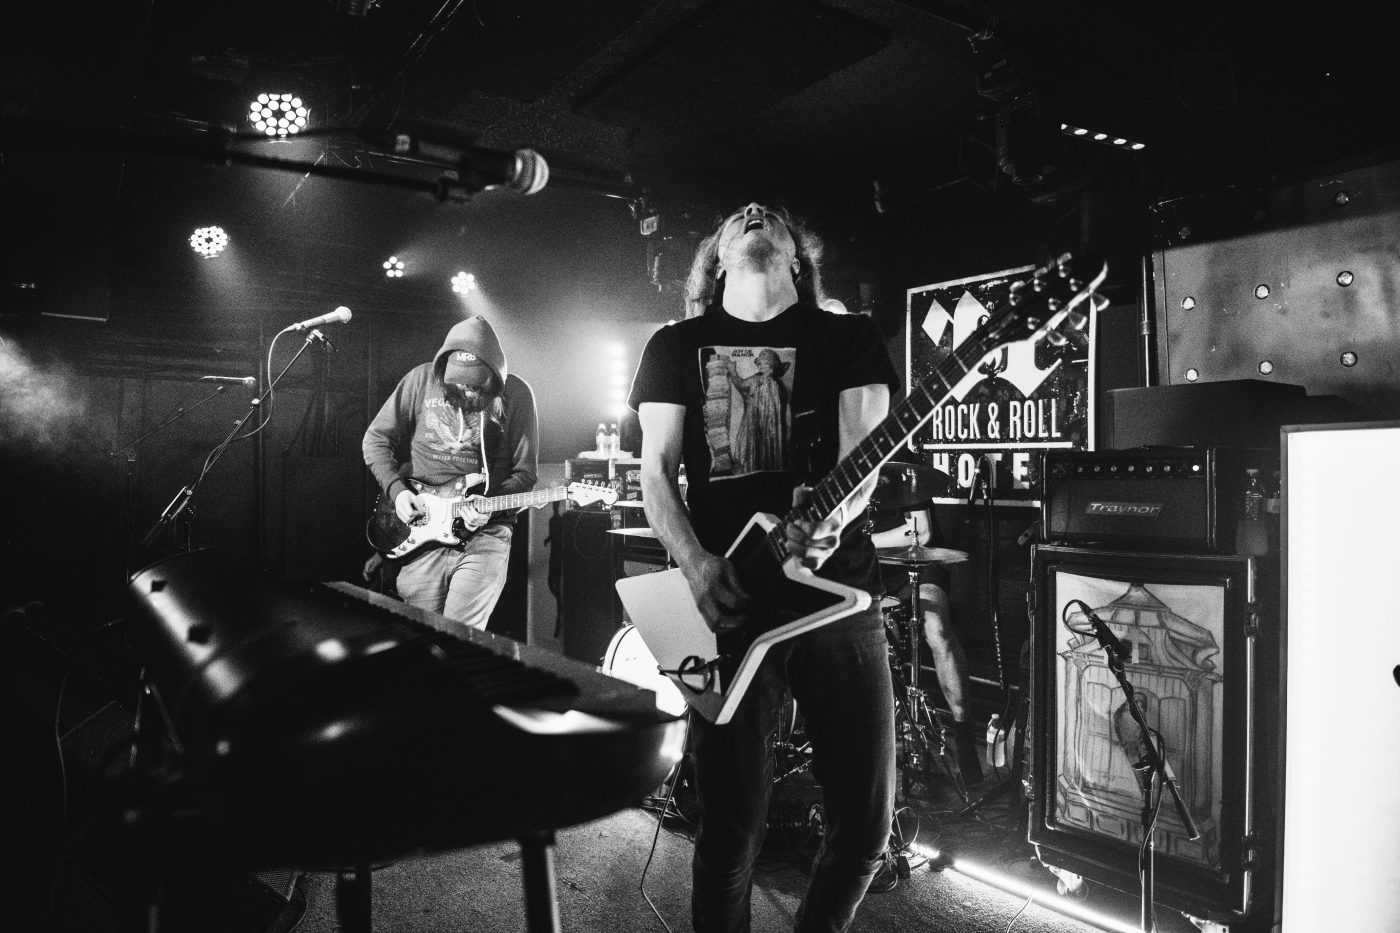 Sorority Noise : Rock & Roll Hotel   Photos   LIVING LIFE FEARLESS